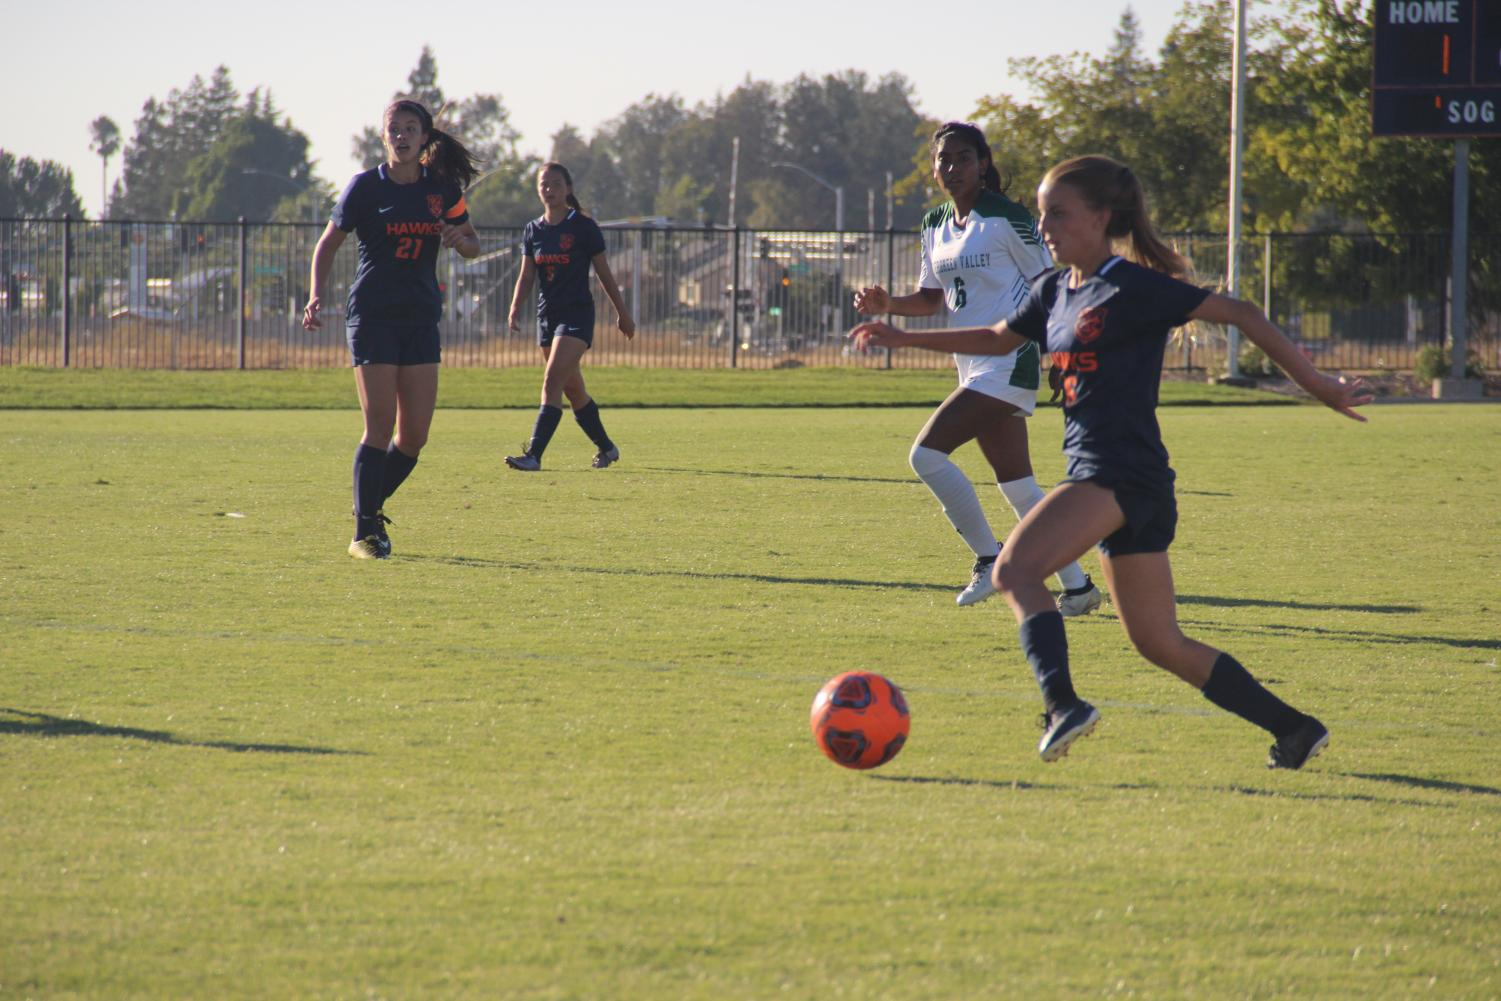 The women's soccer team has high hopes to reach the playoffs this year. Midfielder Taya Bradford, right, is one of 19 freshman on this years team.